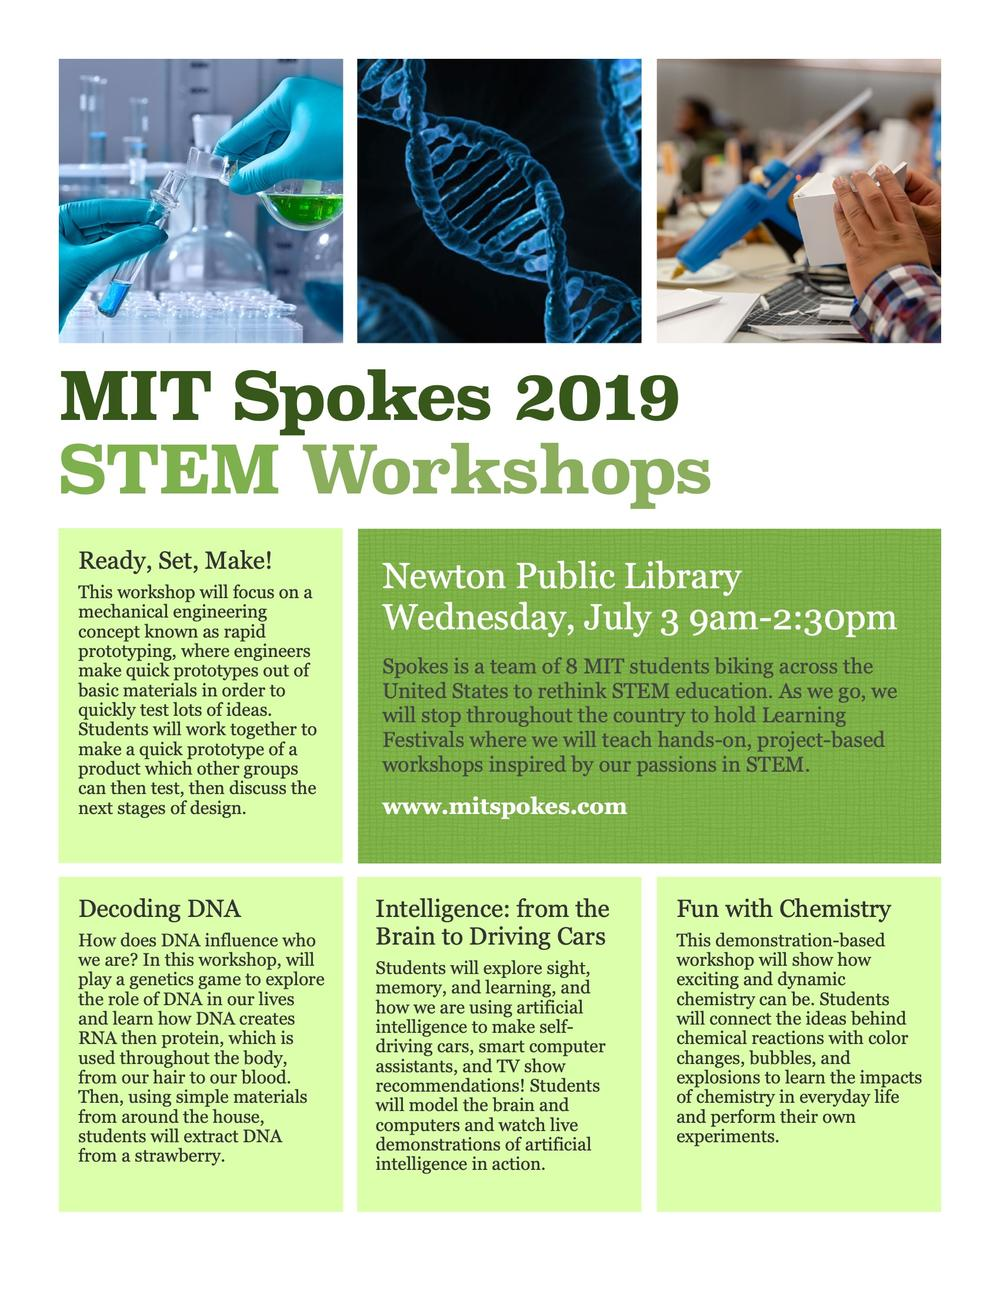 SPOKES MIT STEM Workshops at NPL